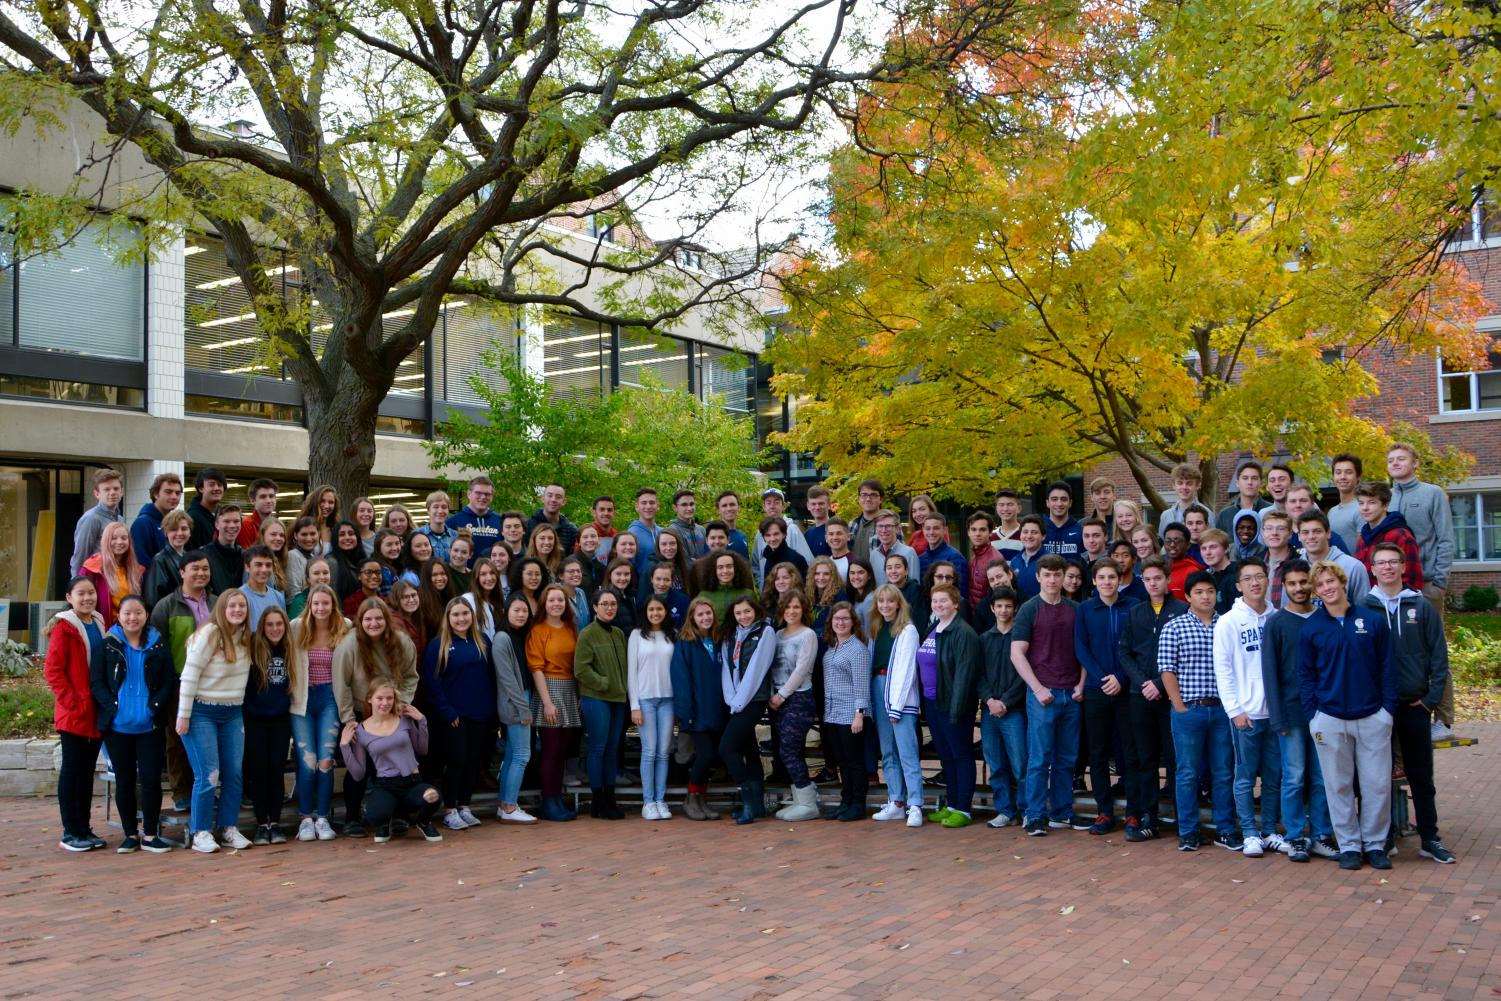 The Class of 2019 pose for a glass picture in the fall colors of Lilly Courtyard.